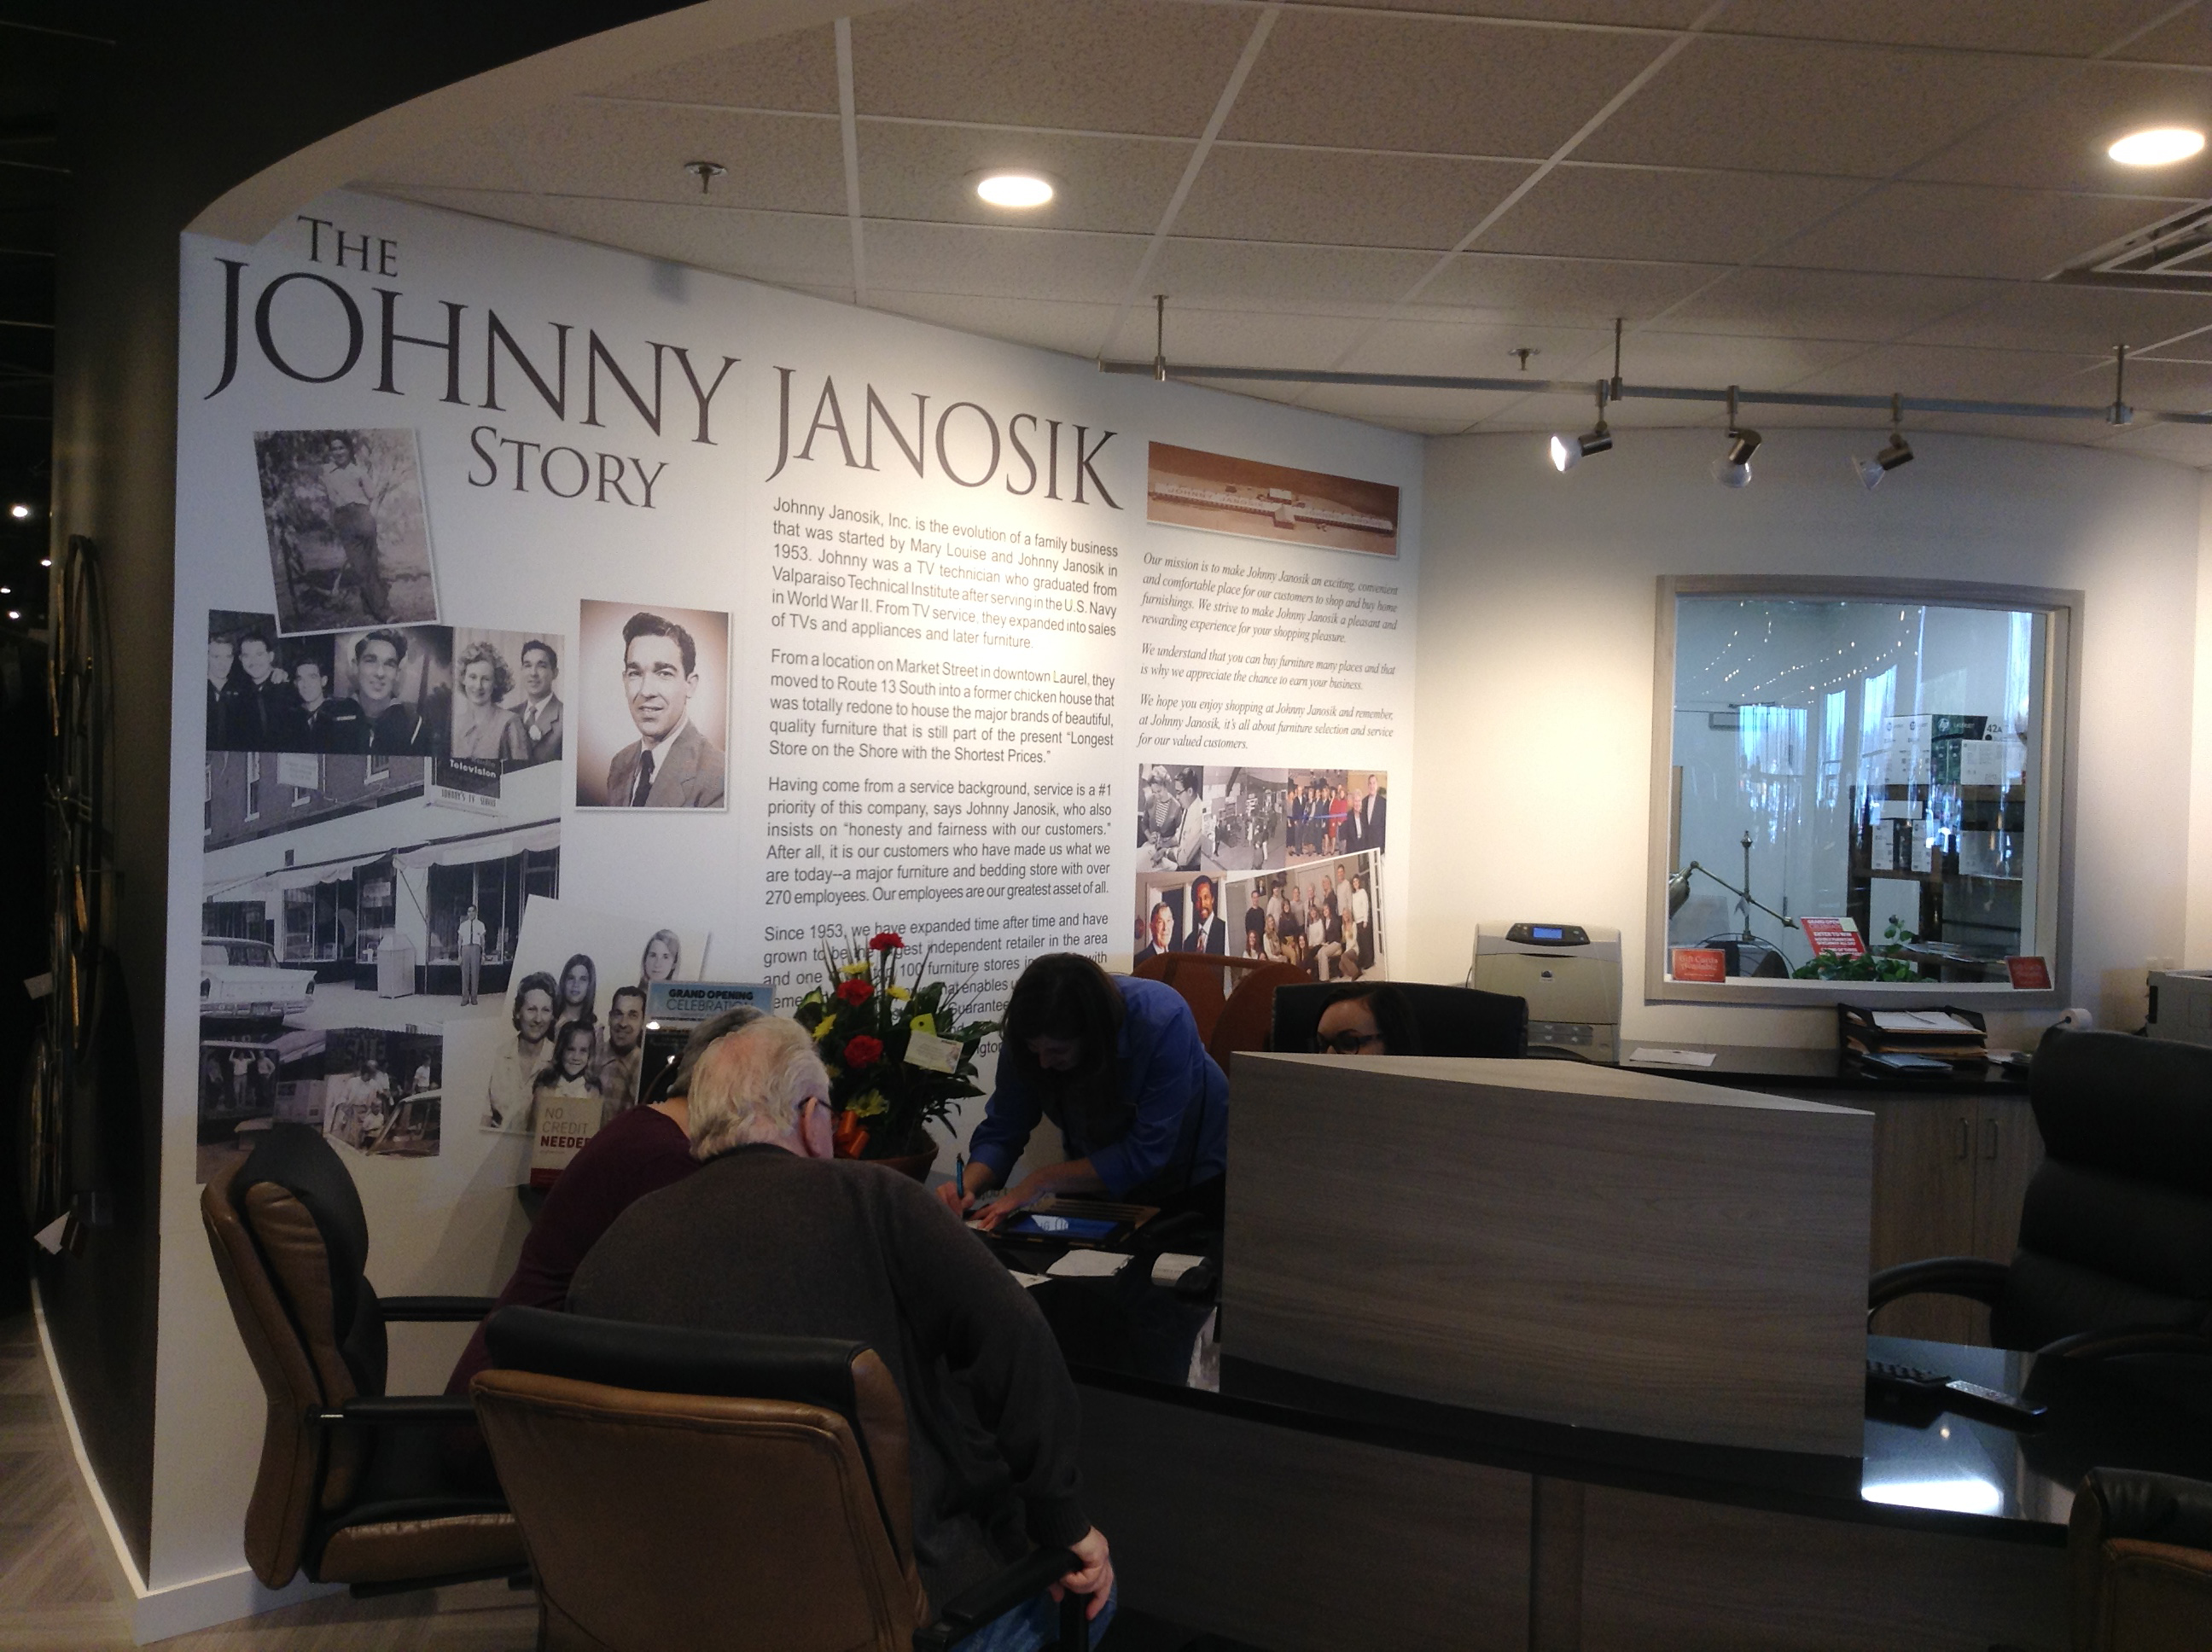 The retailer doesn't forget where it came from. A history wall in the customer service area tells the story of the business founded in 1953 by the late Johnny Janosik and the emphasis the retailer has always placed on service — to customers and the community.